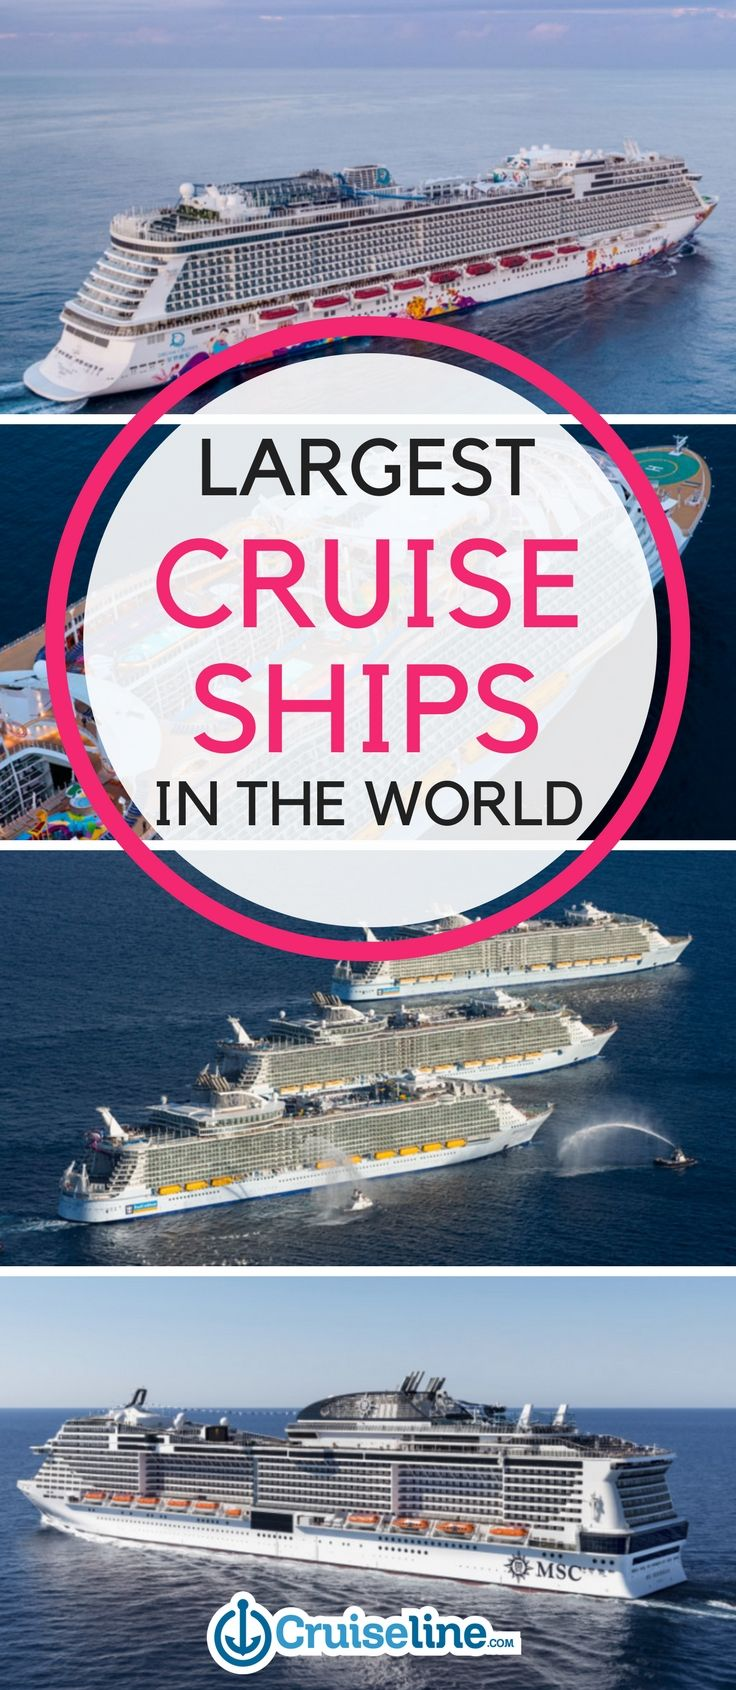 The Largest Cruise Ships In The World Biggest Cruise Ship - Biggest cruise ships list